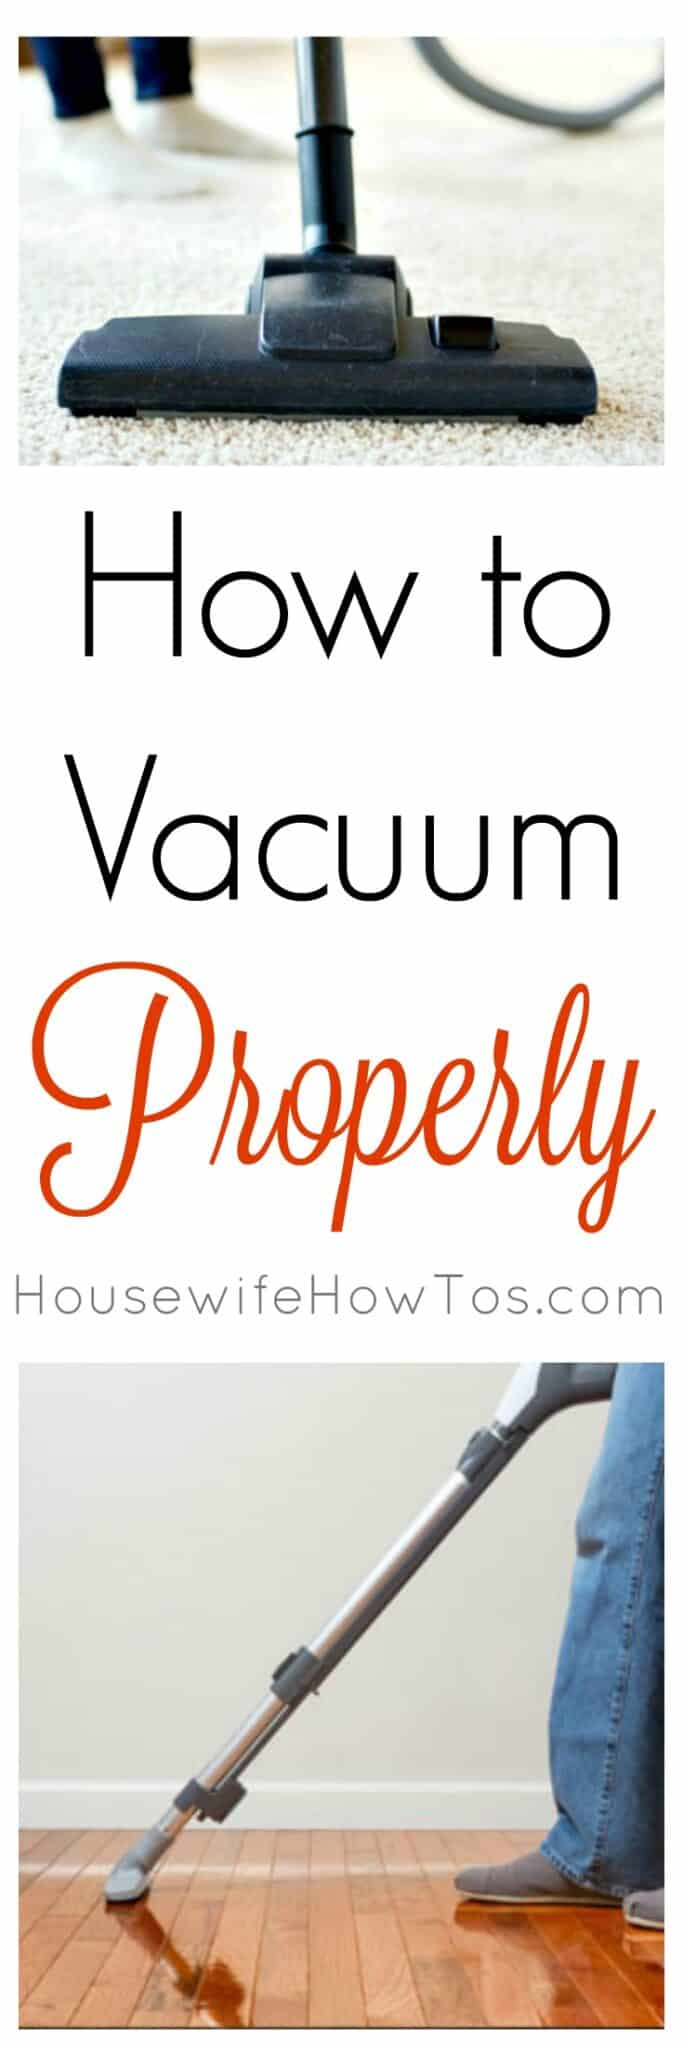 How to Vacuum Properly | Improper vacuuming leaves your home dirtier and ruins your floors. Find out how, and how often, you should do this chore. #vacuum #vacuuming #floorcare #cleaning #cleaningadvice #cleaningtips #howtoclean #indoorair #dust #allergies